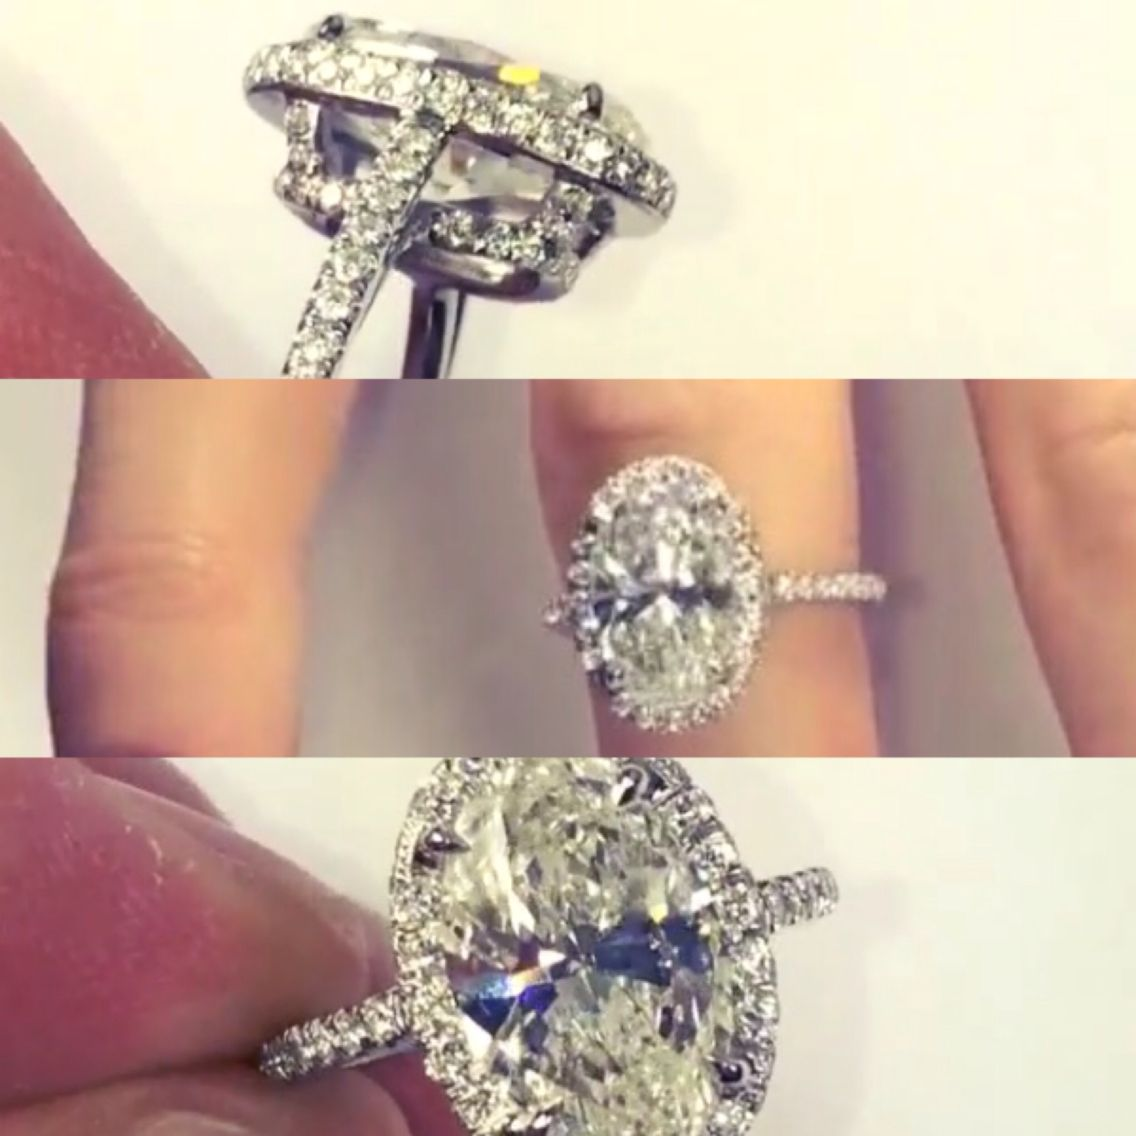 Exactly The Ring I Want Nothing Else Sorry Husband Lol Lauren B Jewelry 3